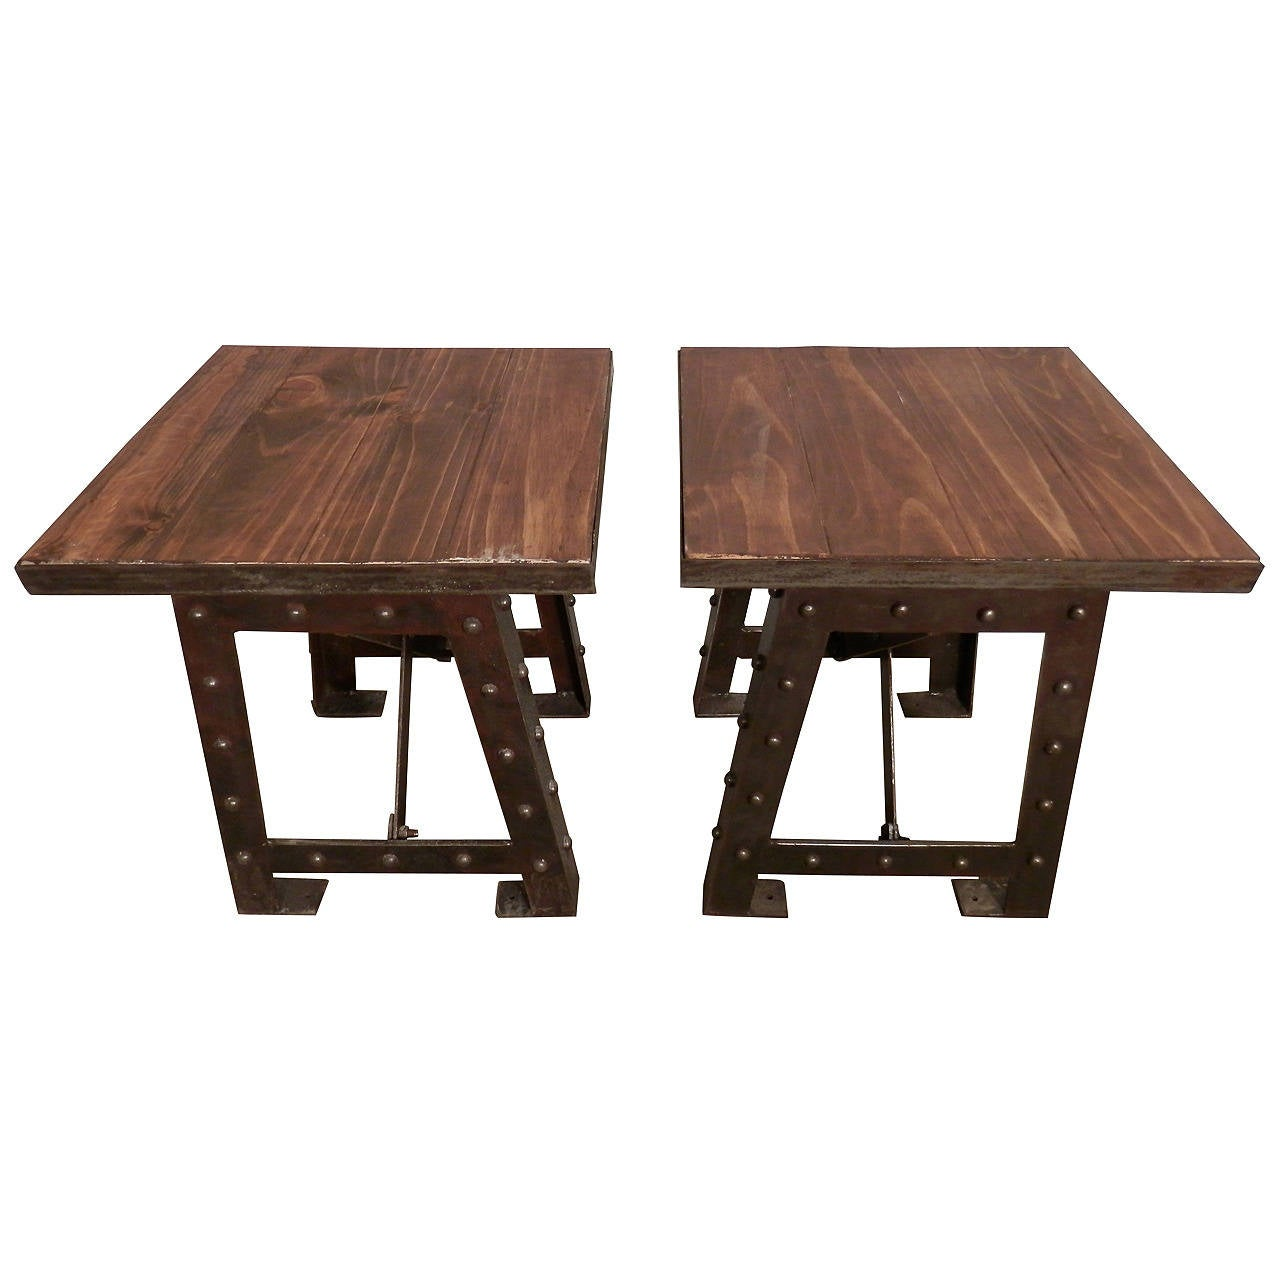 Pair of matching wood top iron base side tables at 1stdibs for Iron and wood side table